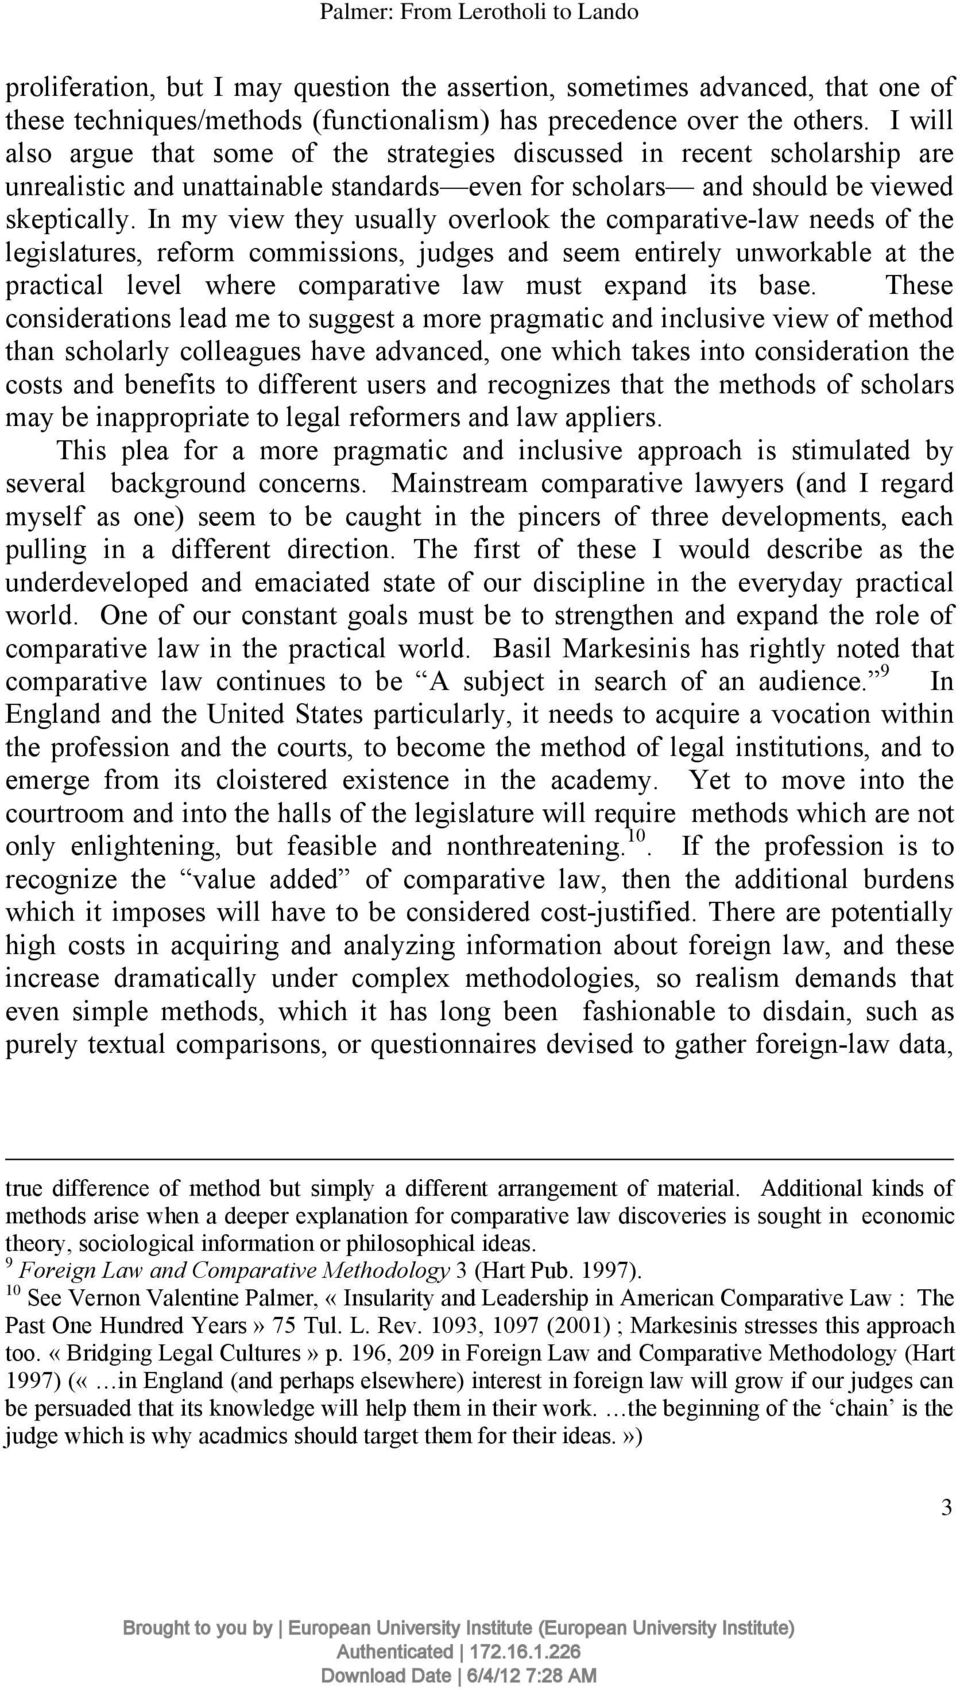 In my view they usually overlook the comparative-law needs of the legislatures, reform commissions, judges and seem entirely unworkable at the practical level where comparative law must expand its